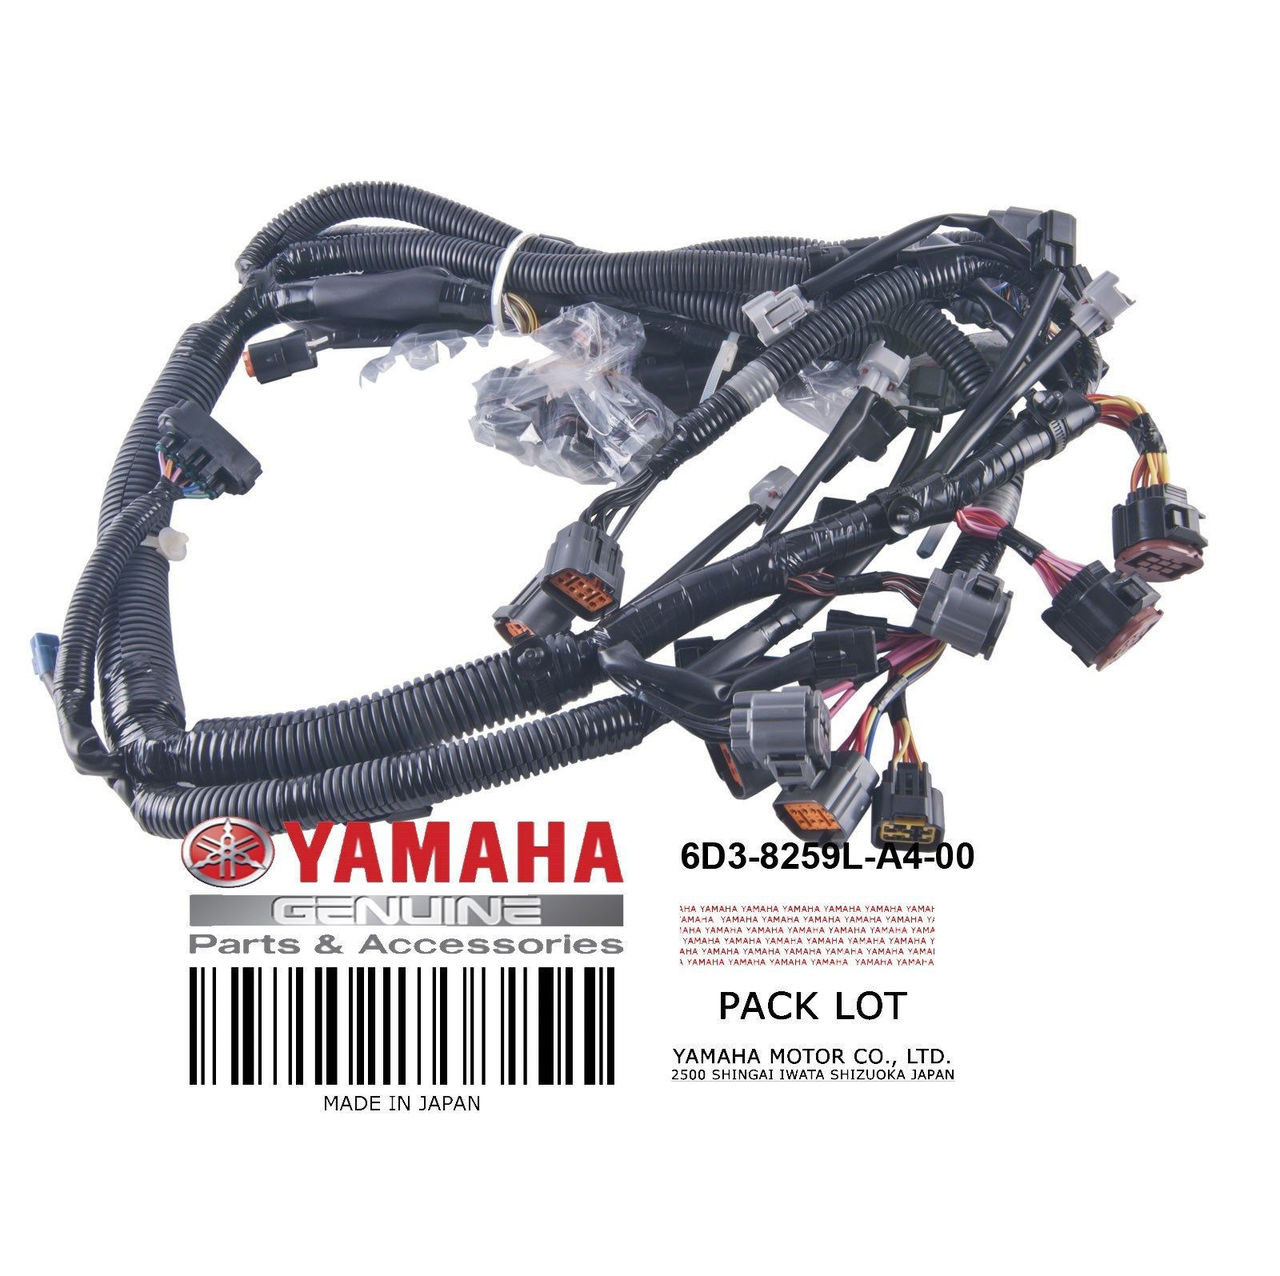 YAMAHA OEM Wire Harness Assembly 6D3-8259L-A4-00 2005-2009 VX Deluxe Sport  Cruiser PWC | Pwc Wiring Harness |  | PWC Parts